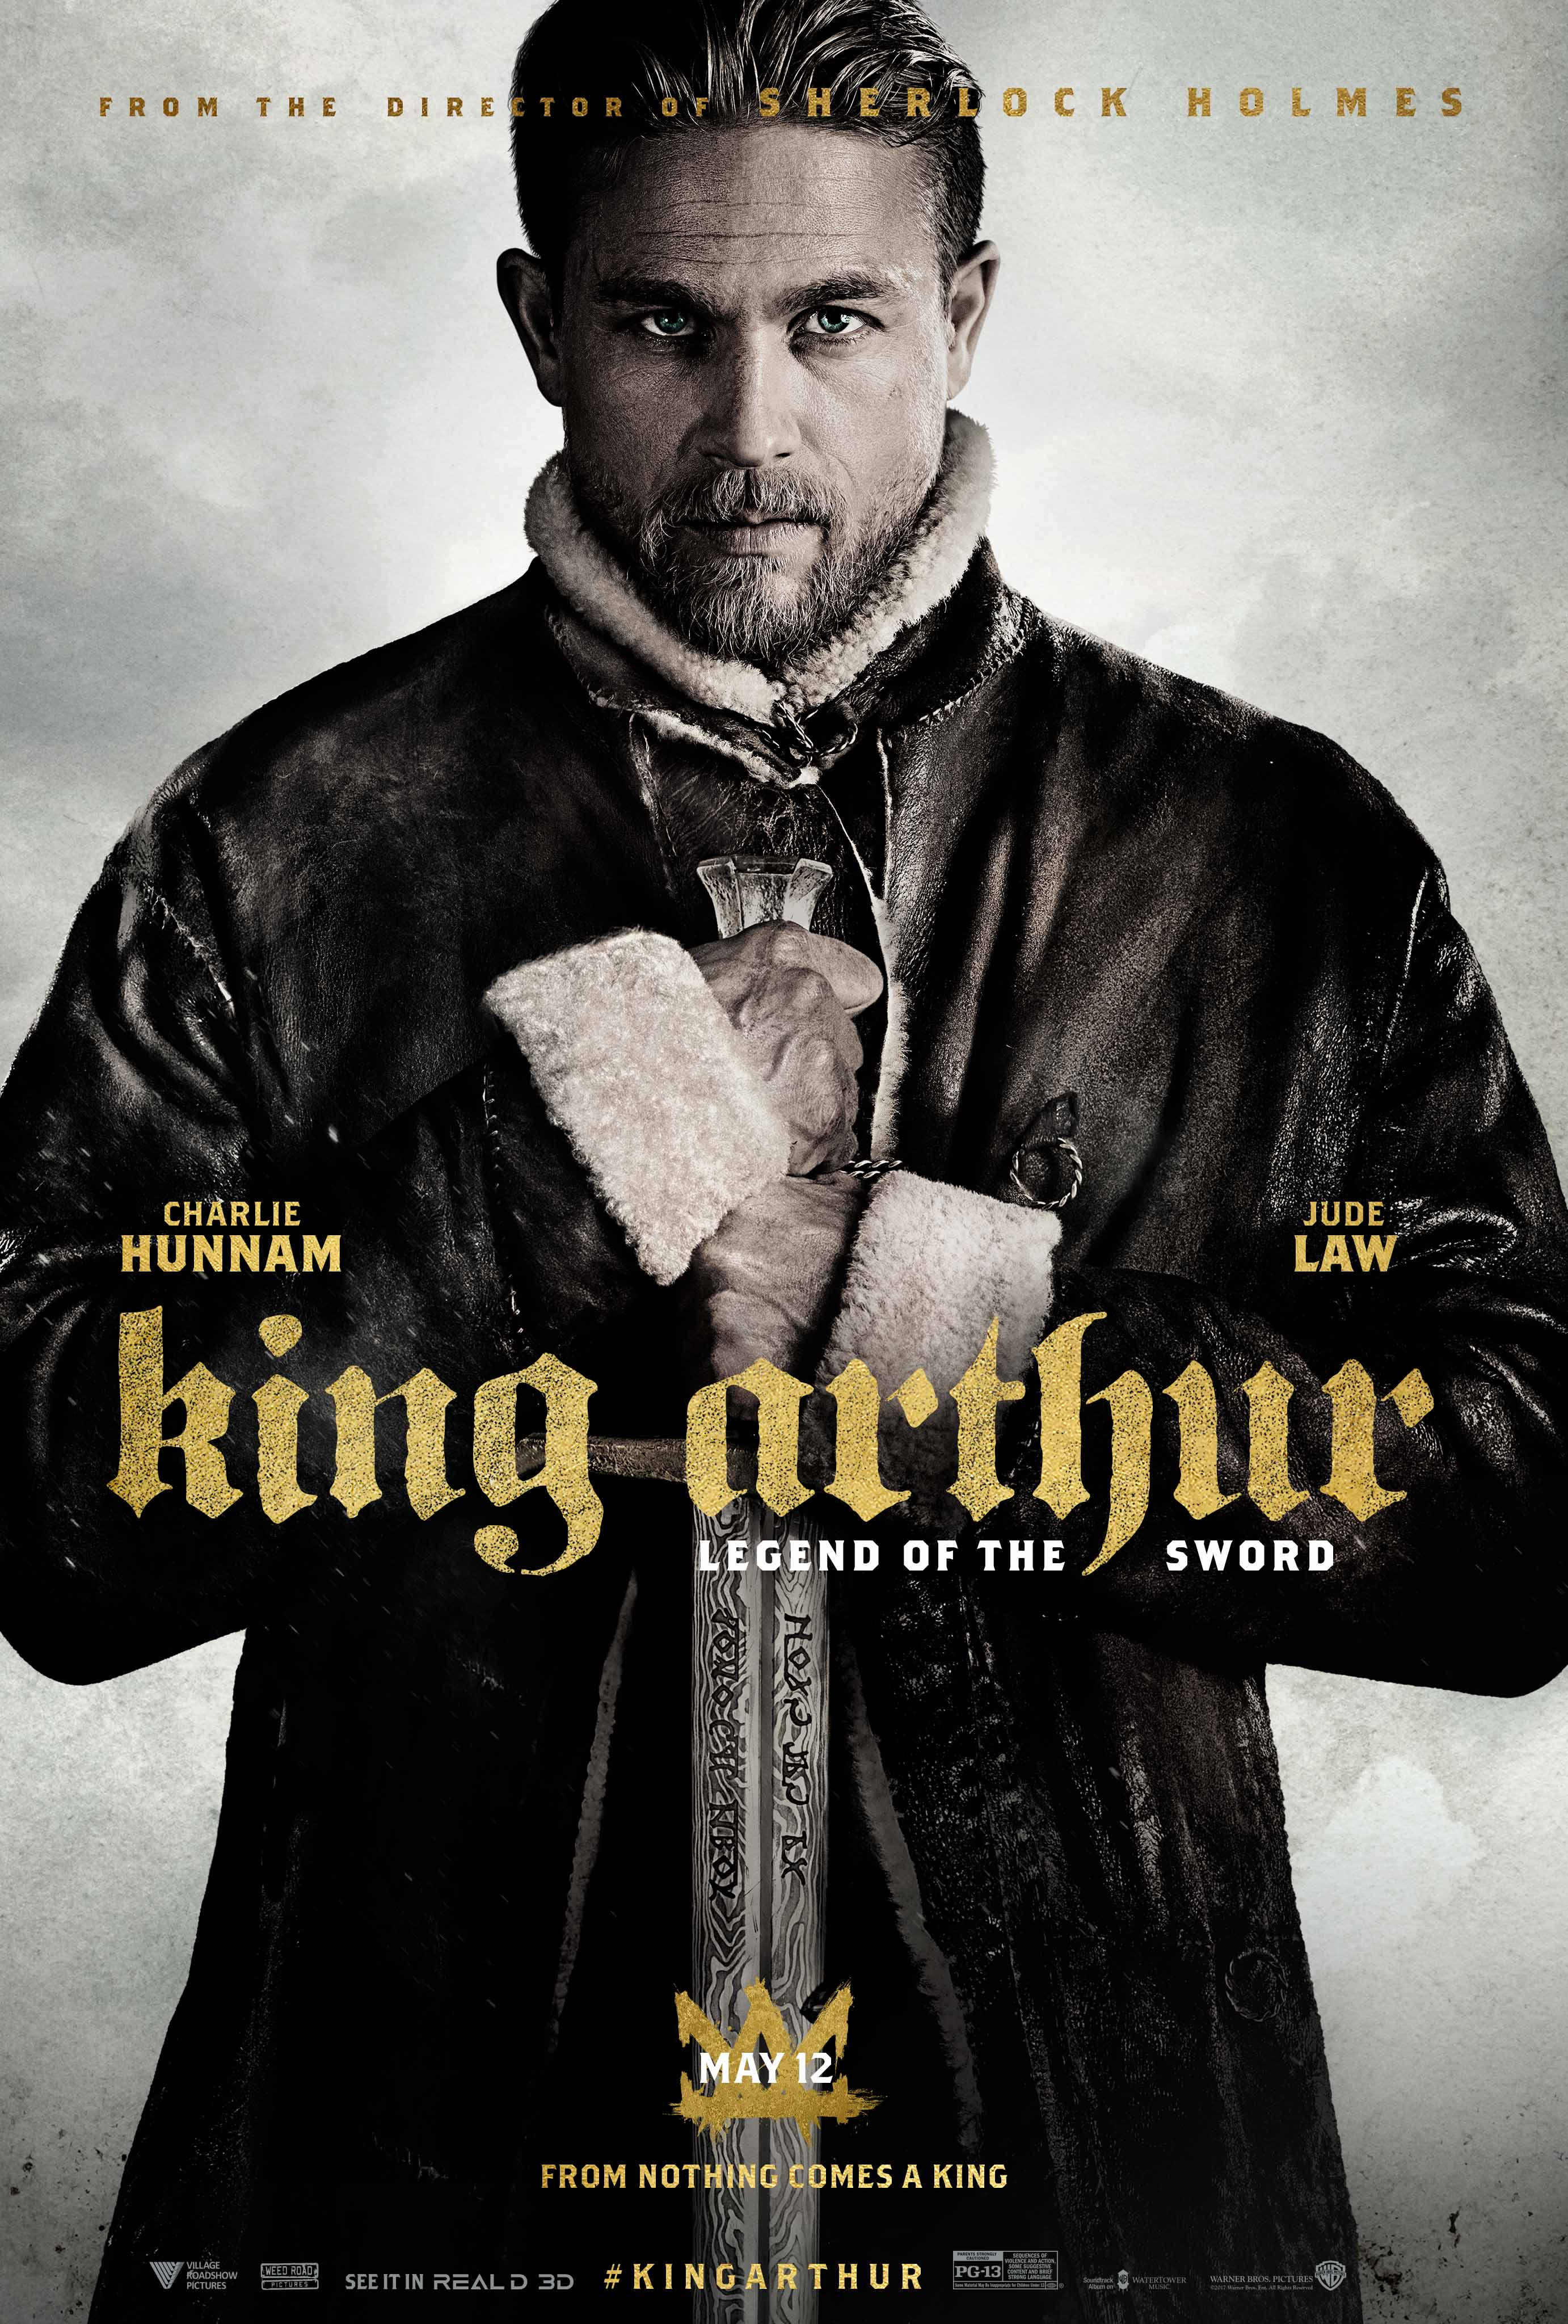 King Arthur: Legend Of The Sword Poster Teases A Hero In The Making